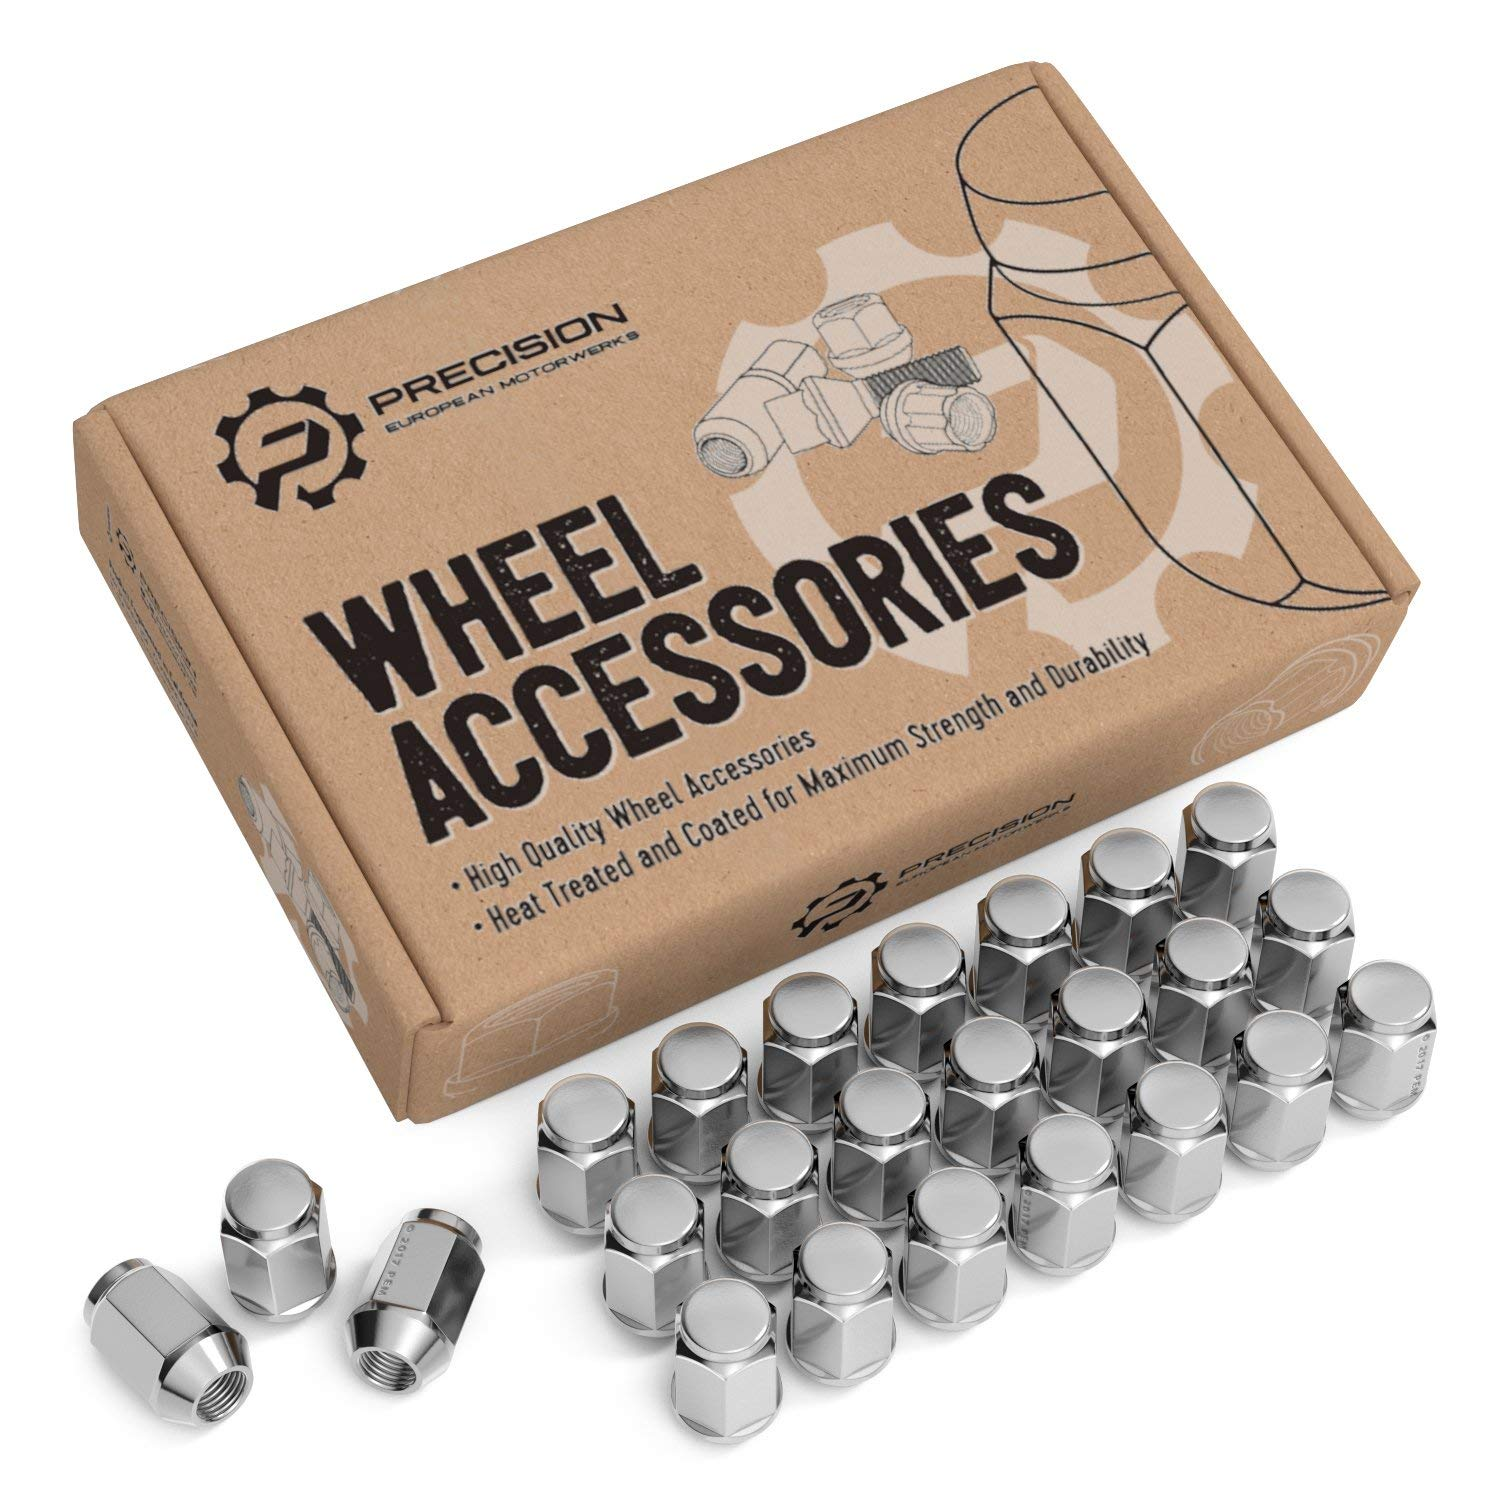 "24pc Chrome Silver Bulge Lug Nuts 1/2""-20 Thread Size - Conical Cone Taper Acorn Seat Closed End - 1.4"" Length - Installs with 19mm or 3/4"" Hex Socket - for Dodge Viper Dakota Durango"